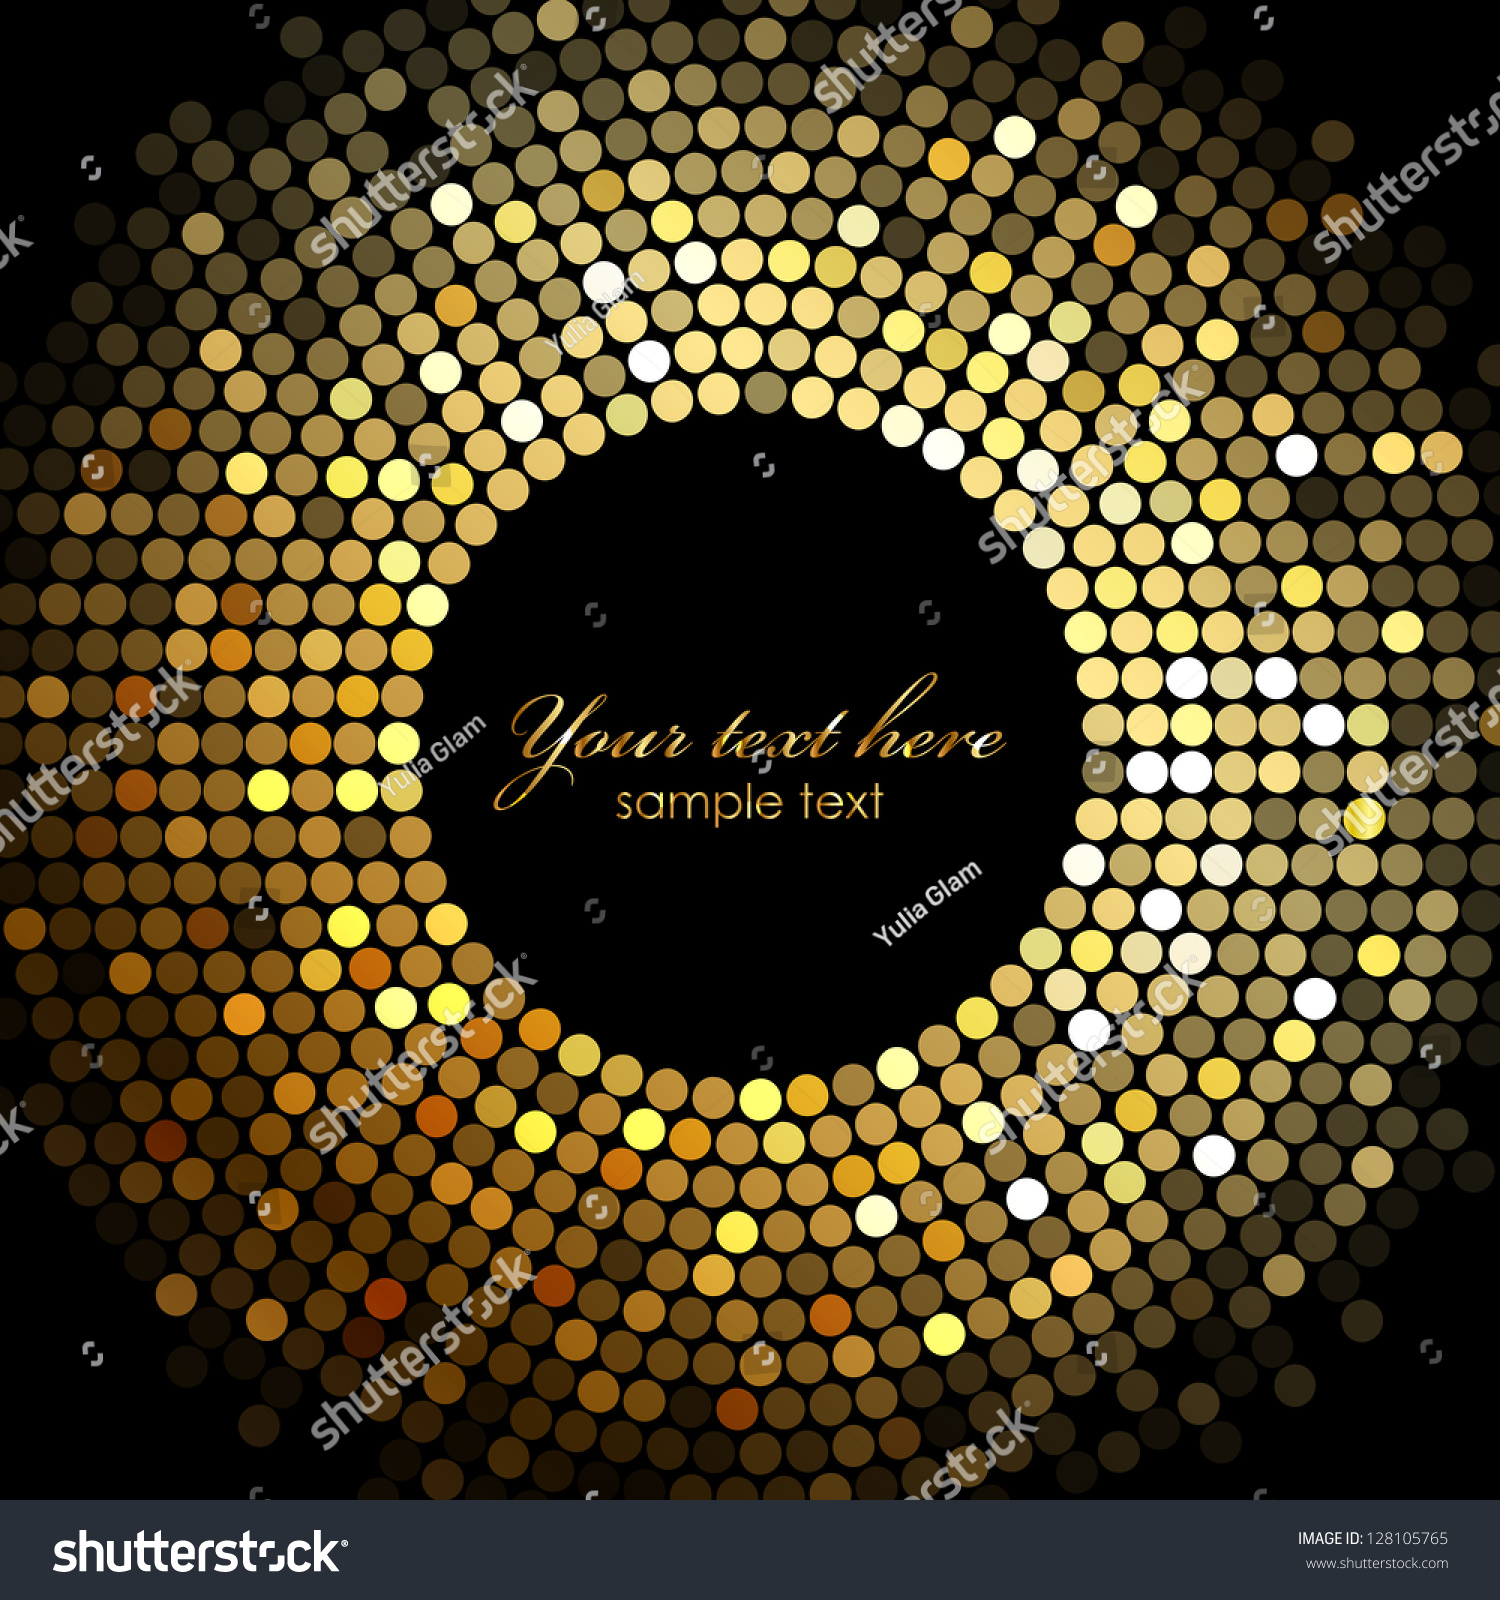 gold party vector - photo #8